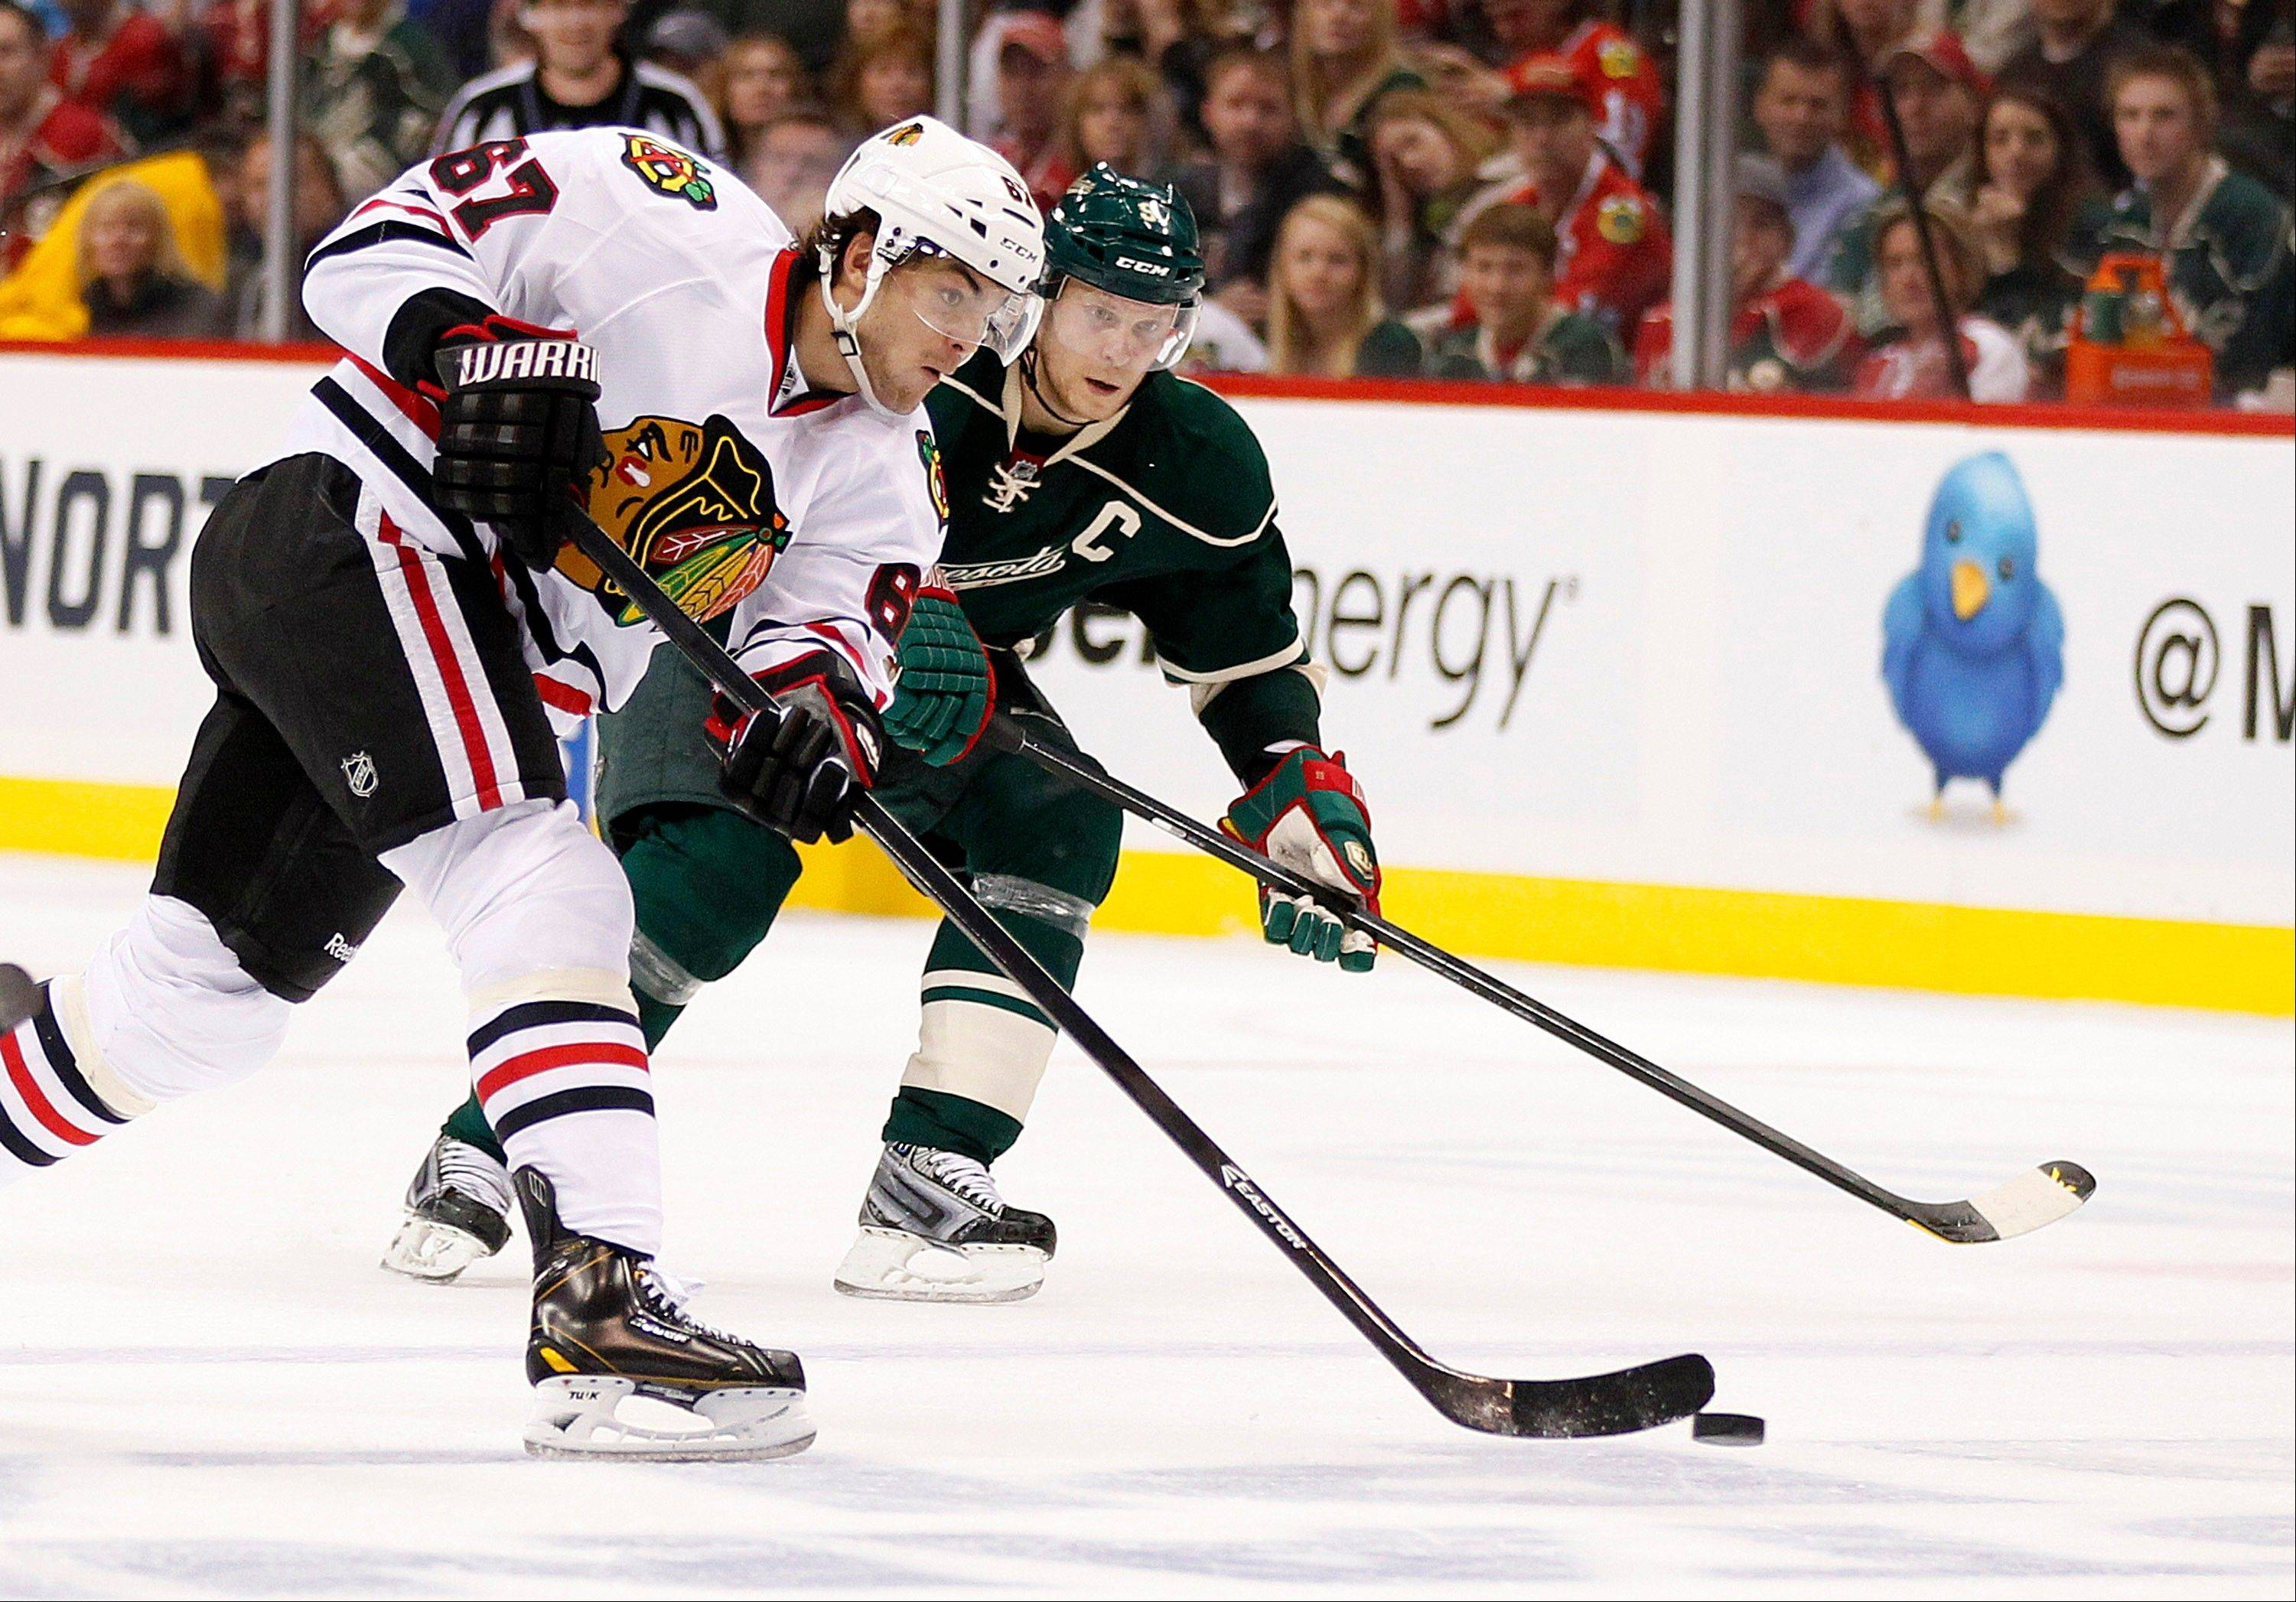 Chicago Blackhawks� Michael Frolik (shoots against Minnesota Wild�s Mikko Koivu in the second period of Game 3 of an NHL hockey Stanley Cup playoff series Sunday, May 5, 2013 in St. Paul, Minn.